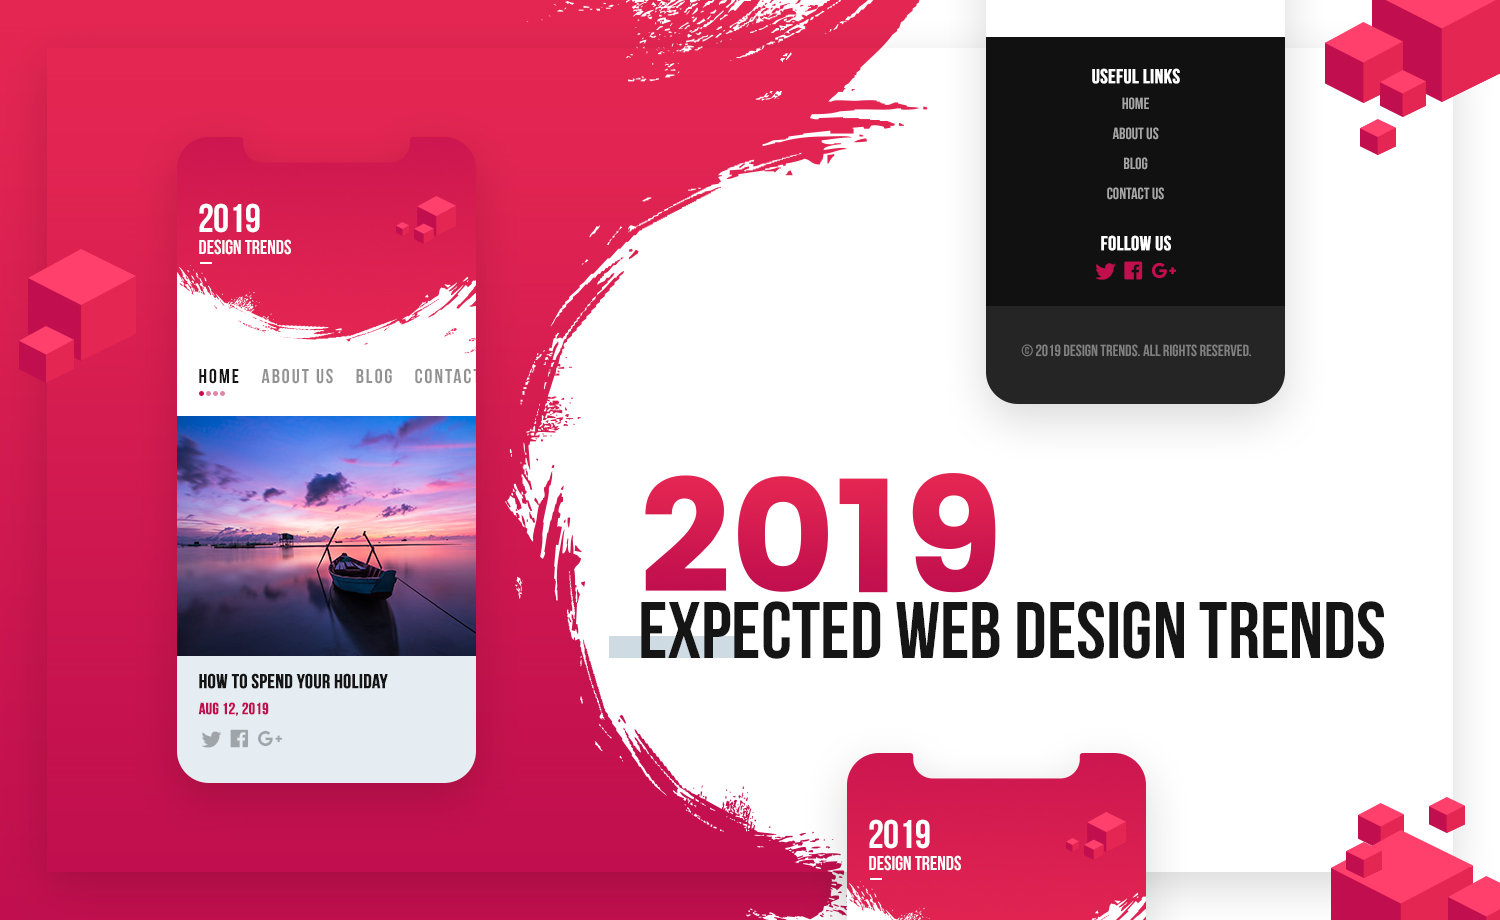 Expected Changes in Web Design for 2019